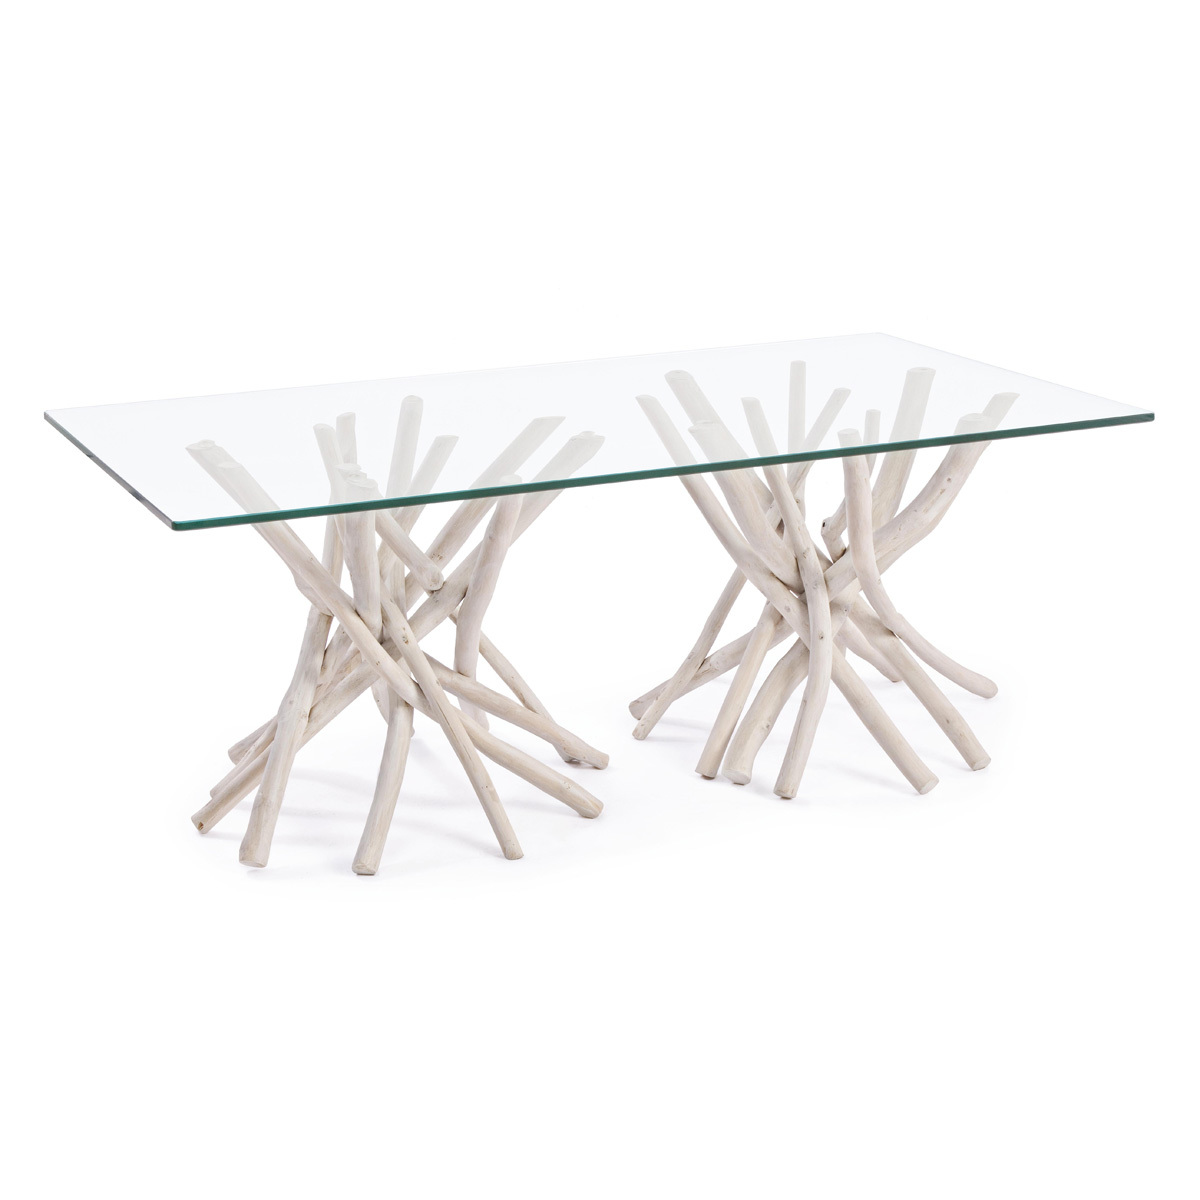 Photos 1: Bizzotto Wood and glass table l. 110 x 60 0680408